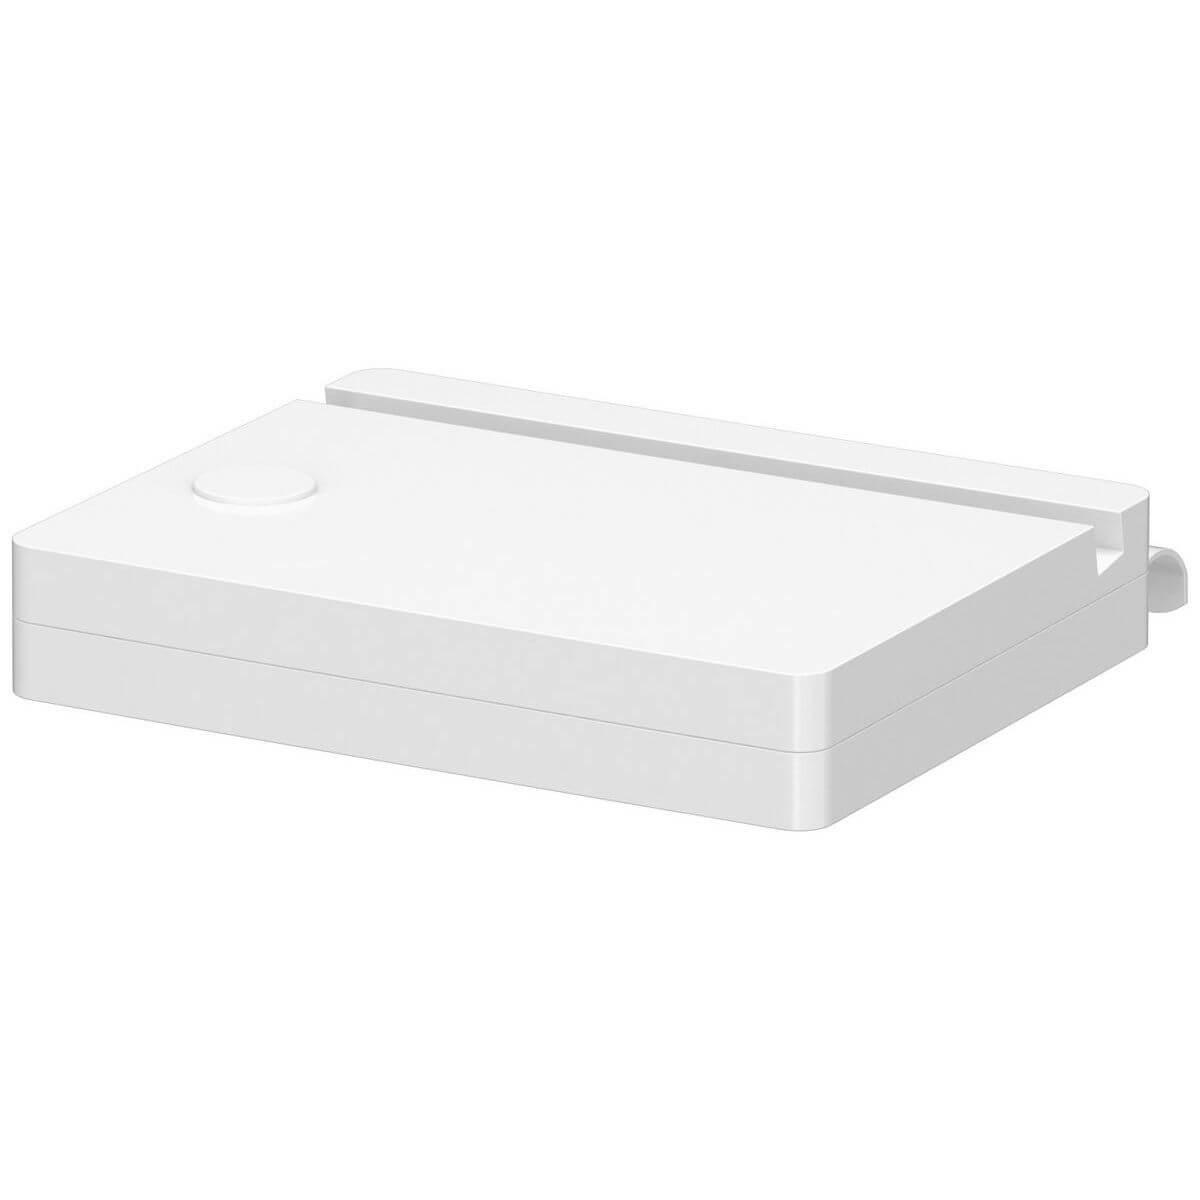 Soporte tablet Camas CLICKON WHITE Flexa blanco